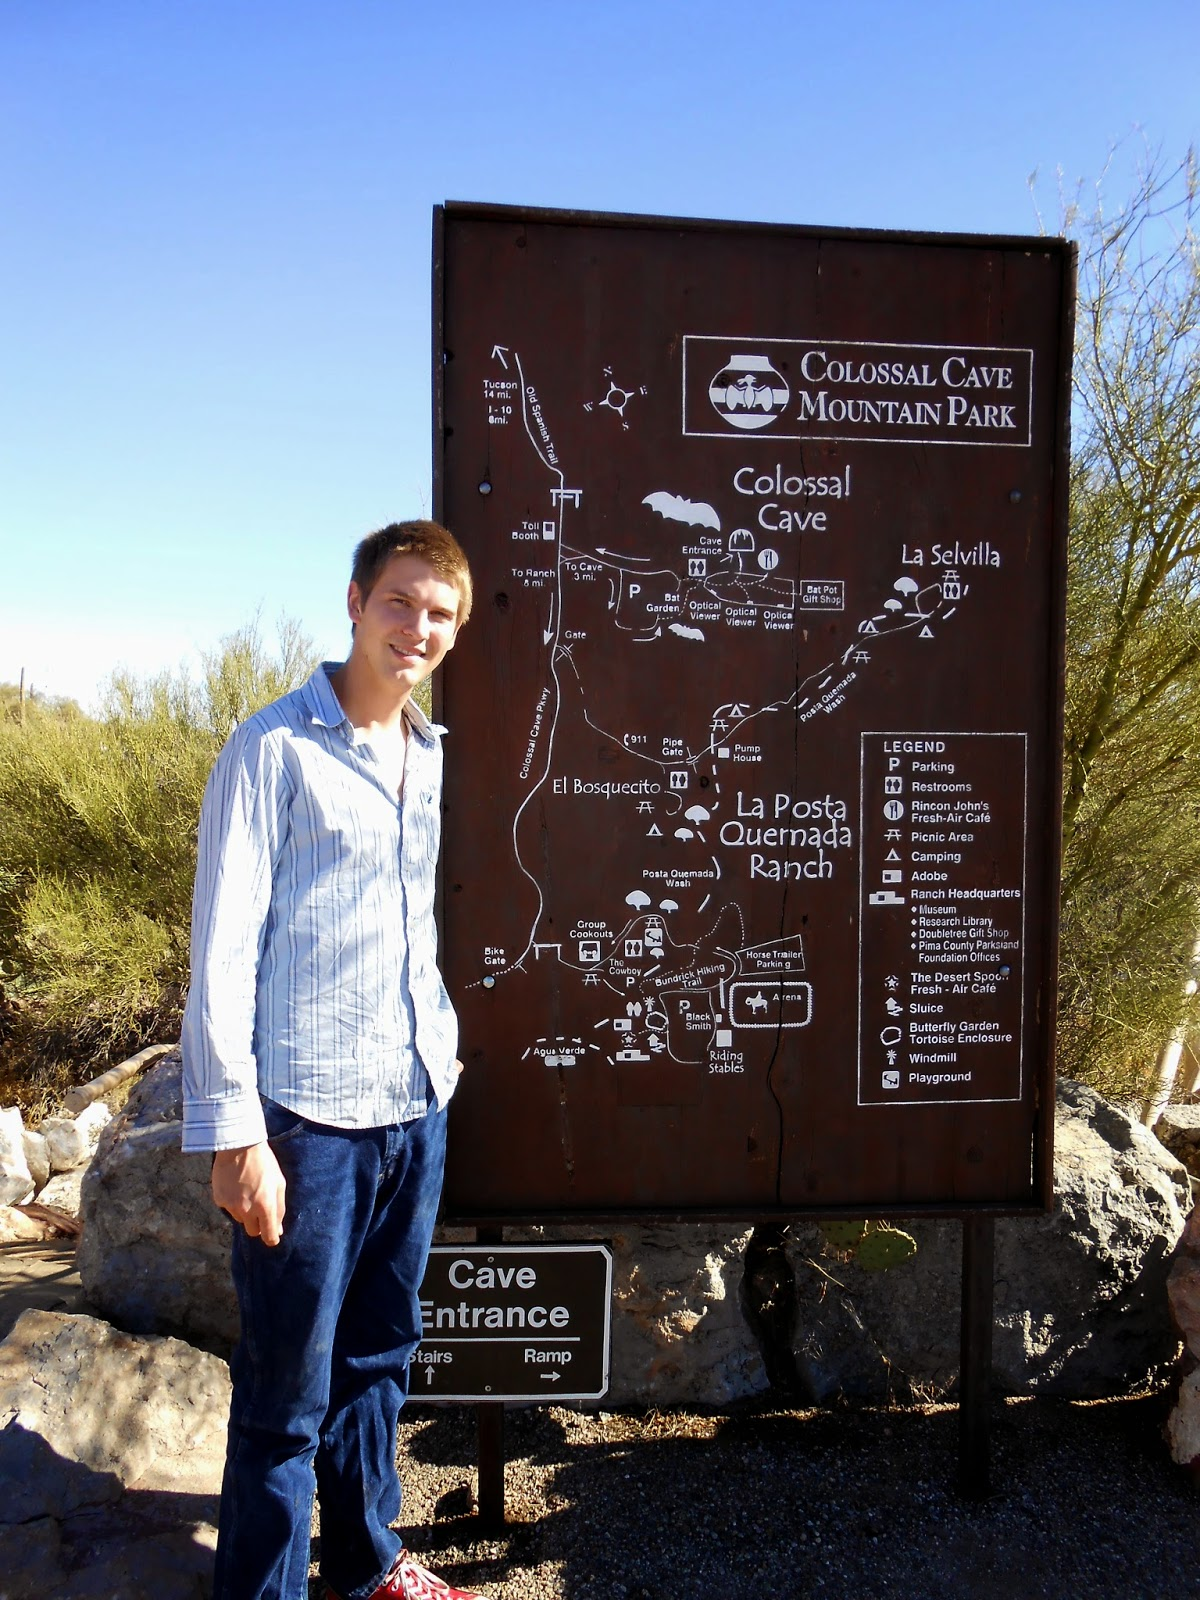 map of colossal cave mountain park tucson arizona